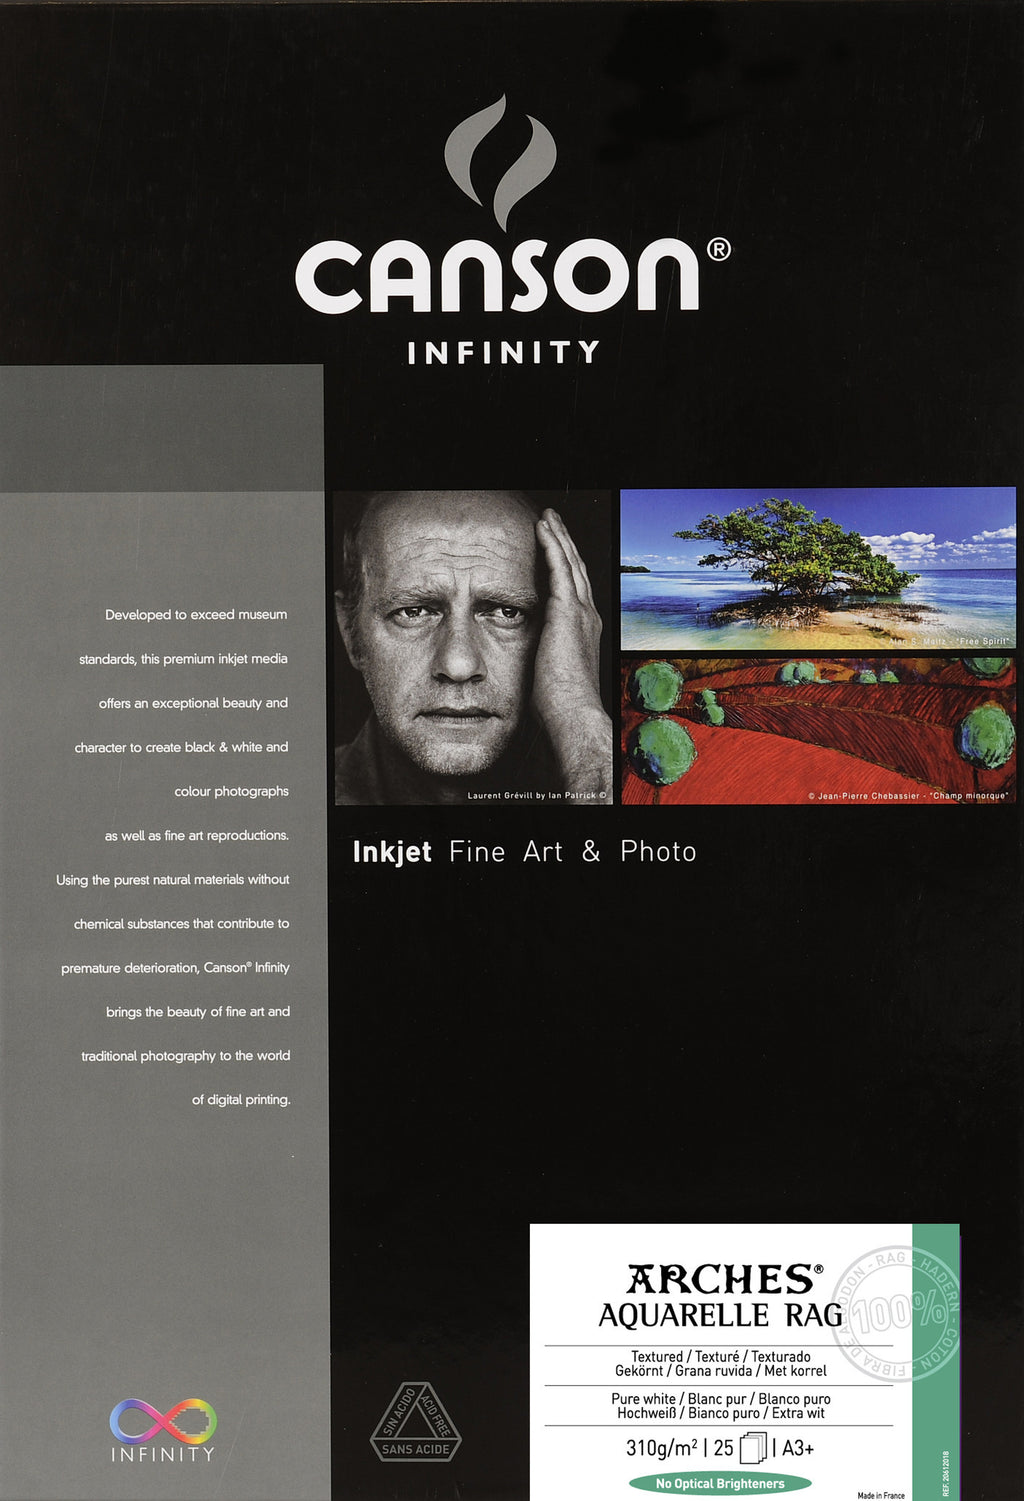 Canson Infinity Aquarelle Rag - 310gsm - A3+ (25 sheets) - Wall Your Photos